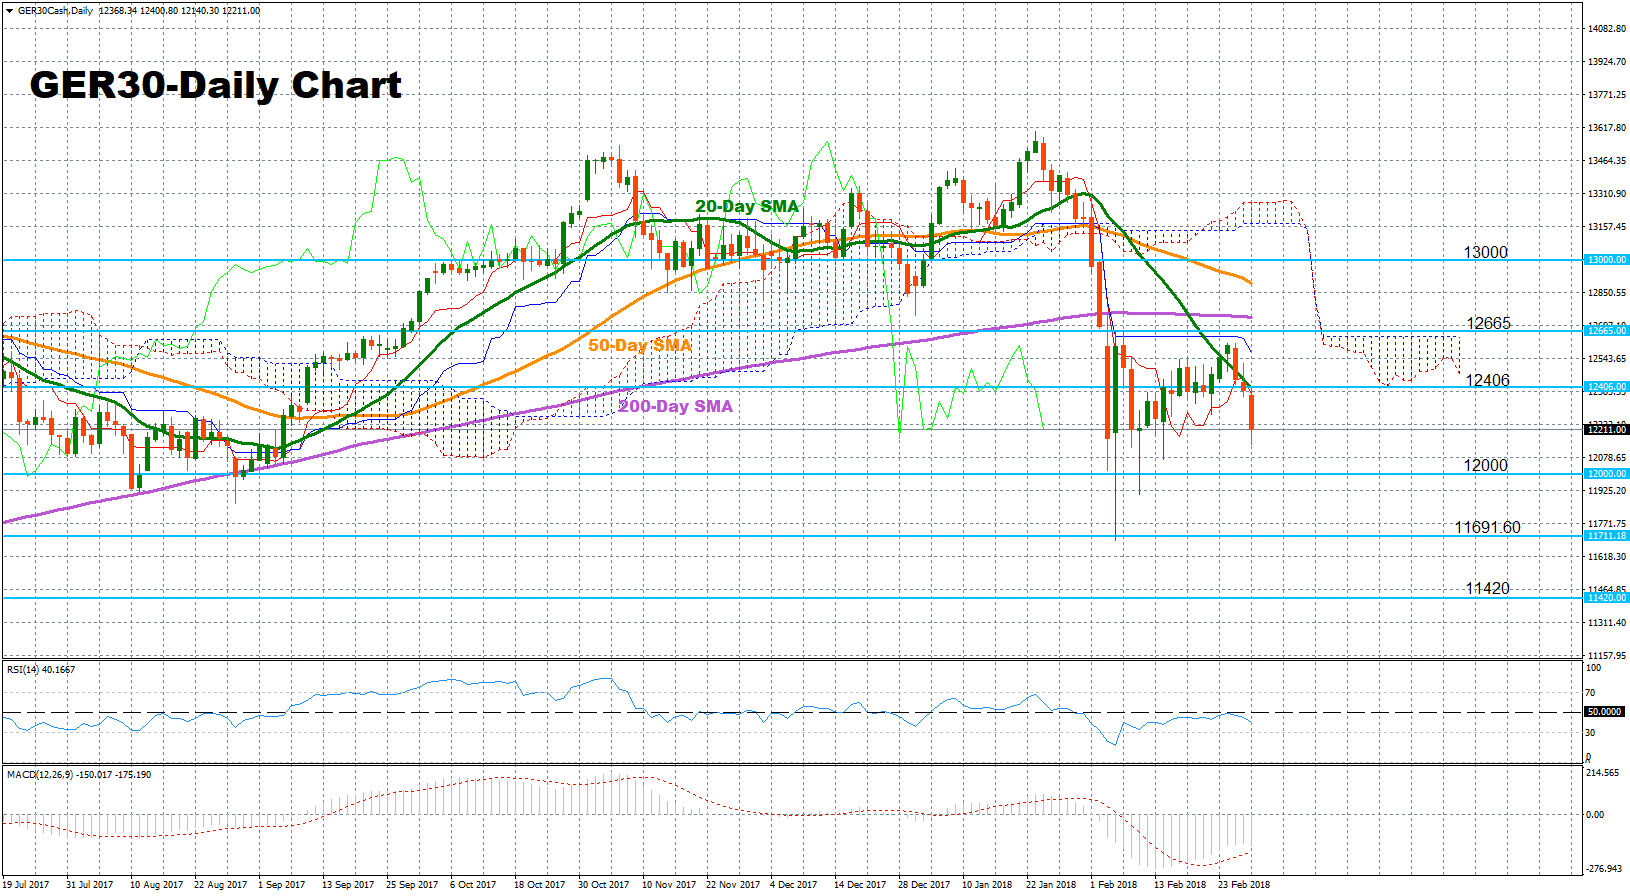 GER30 Cash Daily | EconAlerts